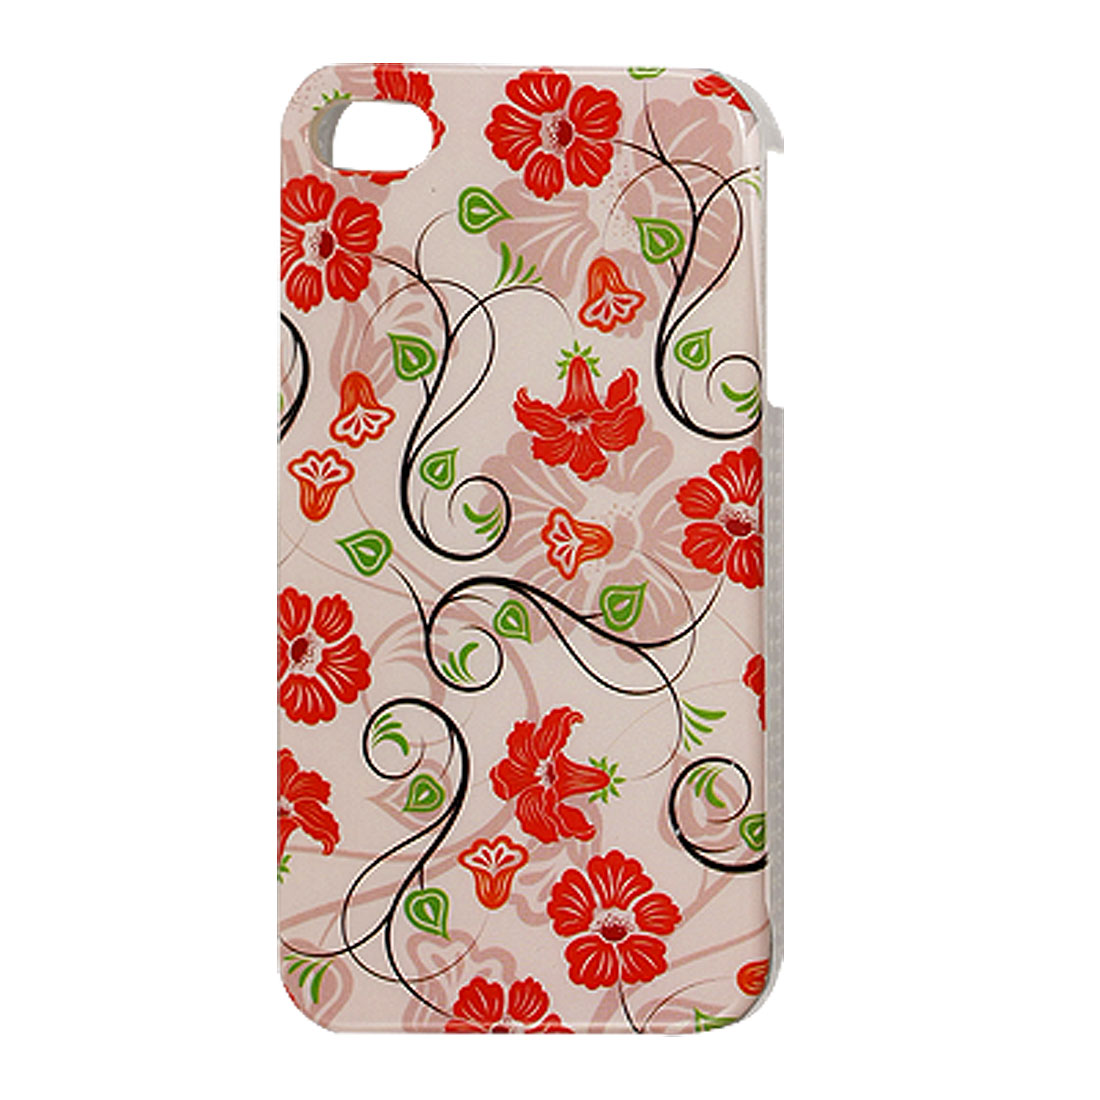 Red Flower Green Heart Leaf Light Pink Plastic IMD Back Case for iPhone 4 4G 4S